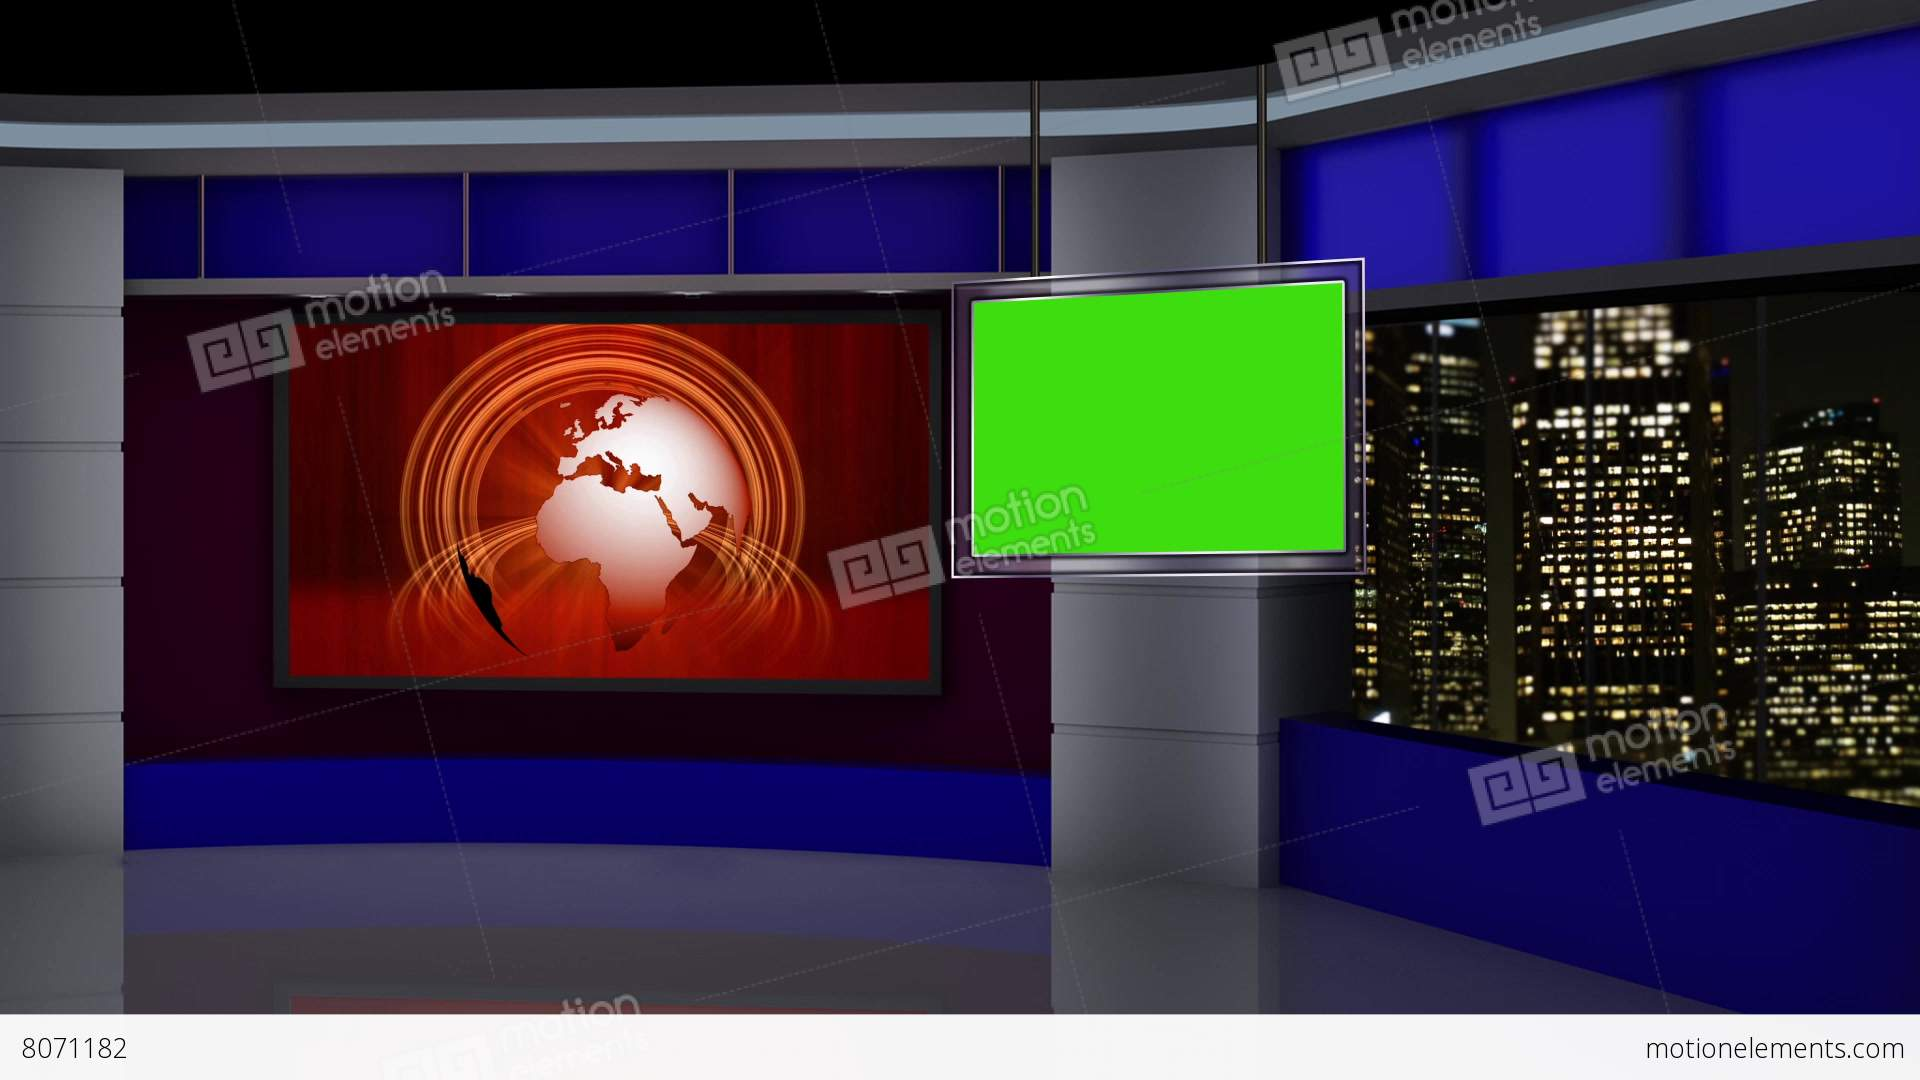 News background images